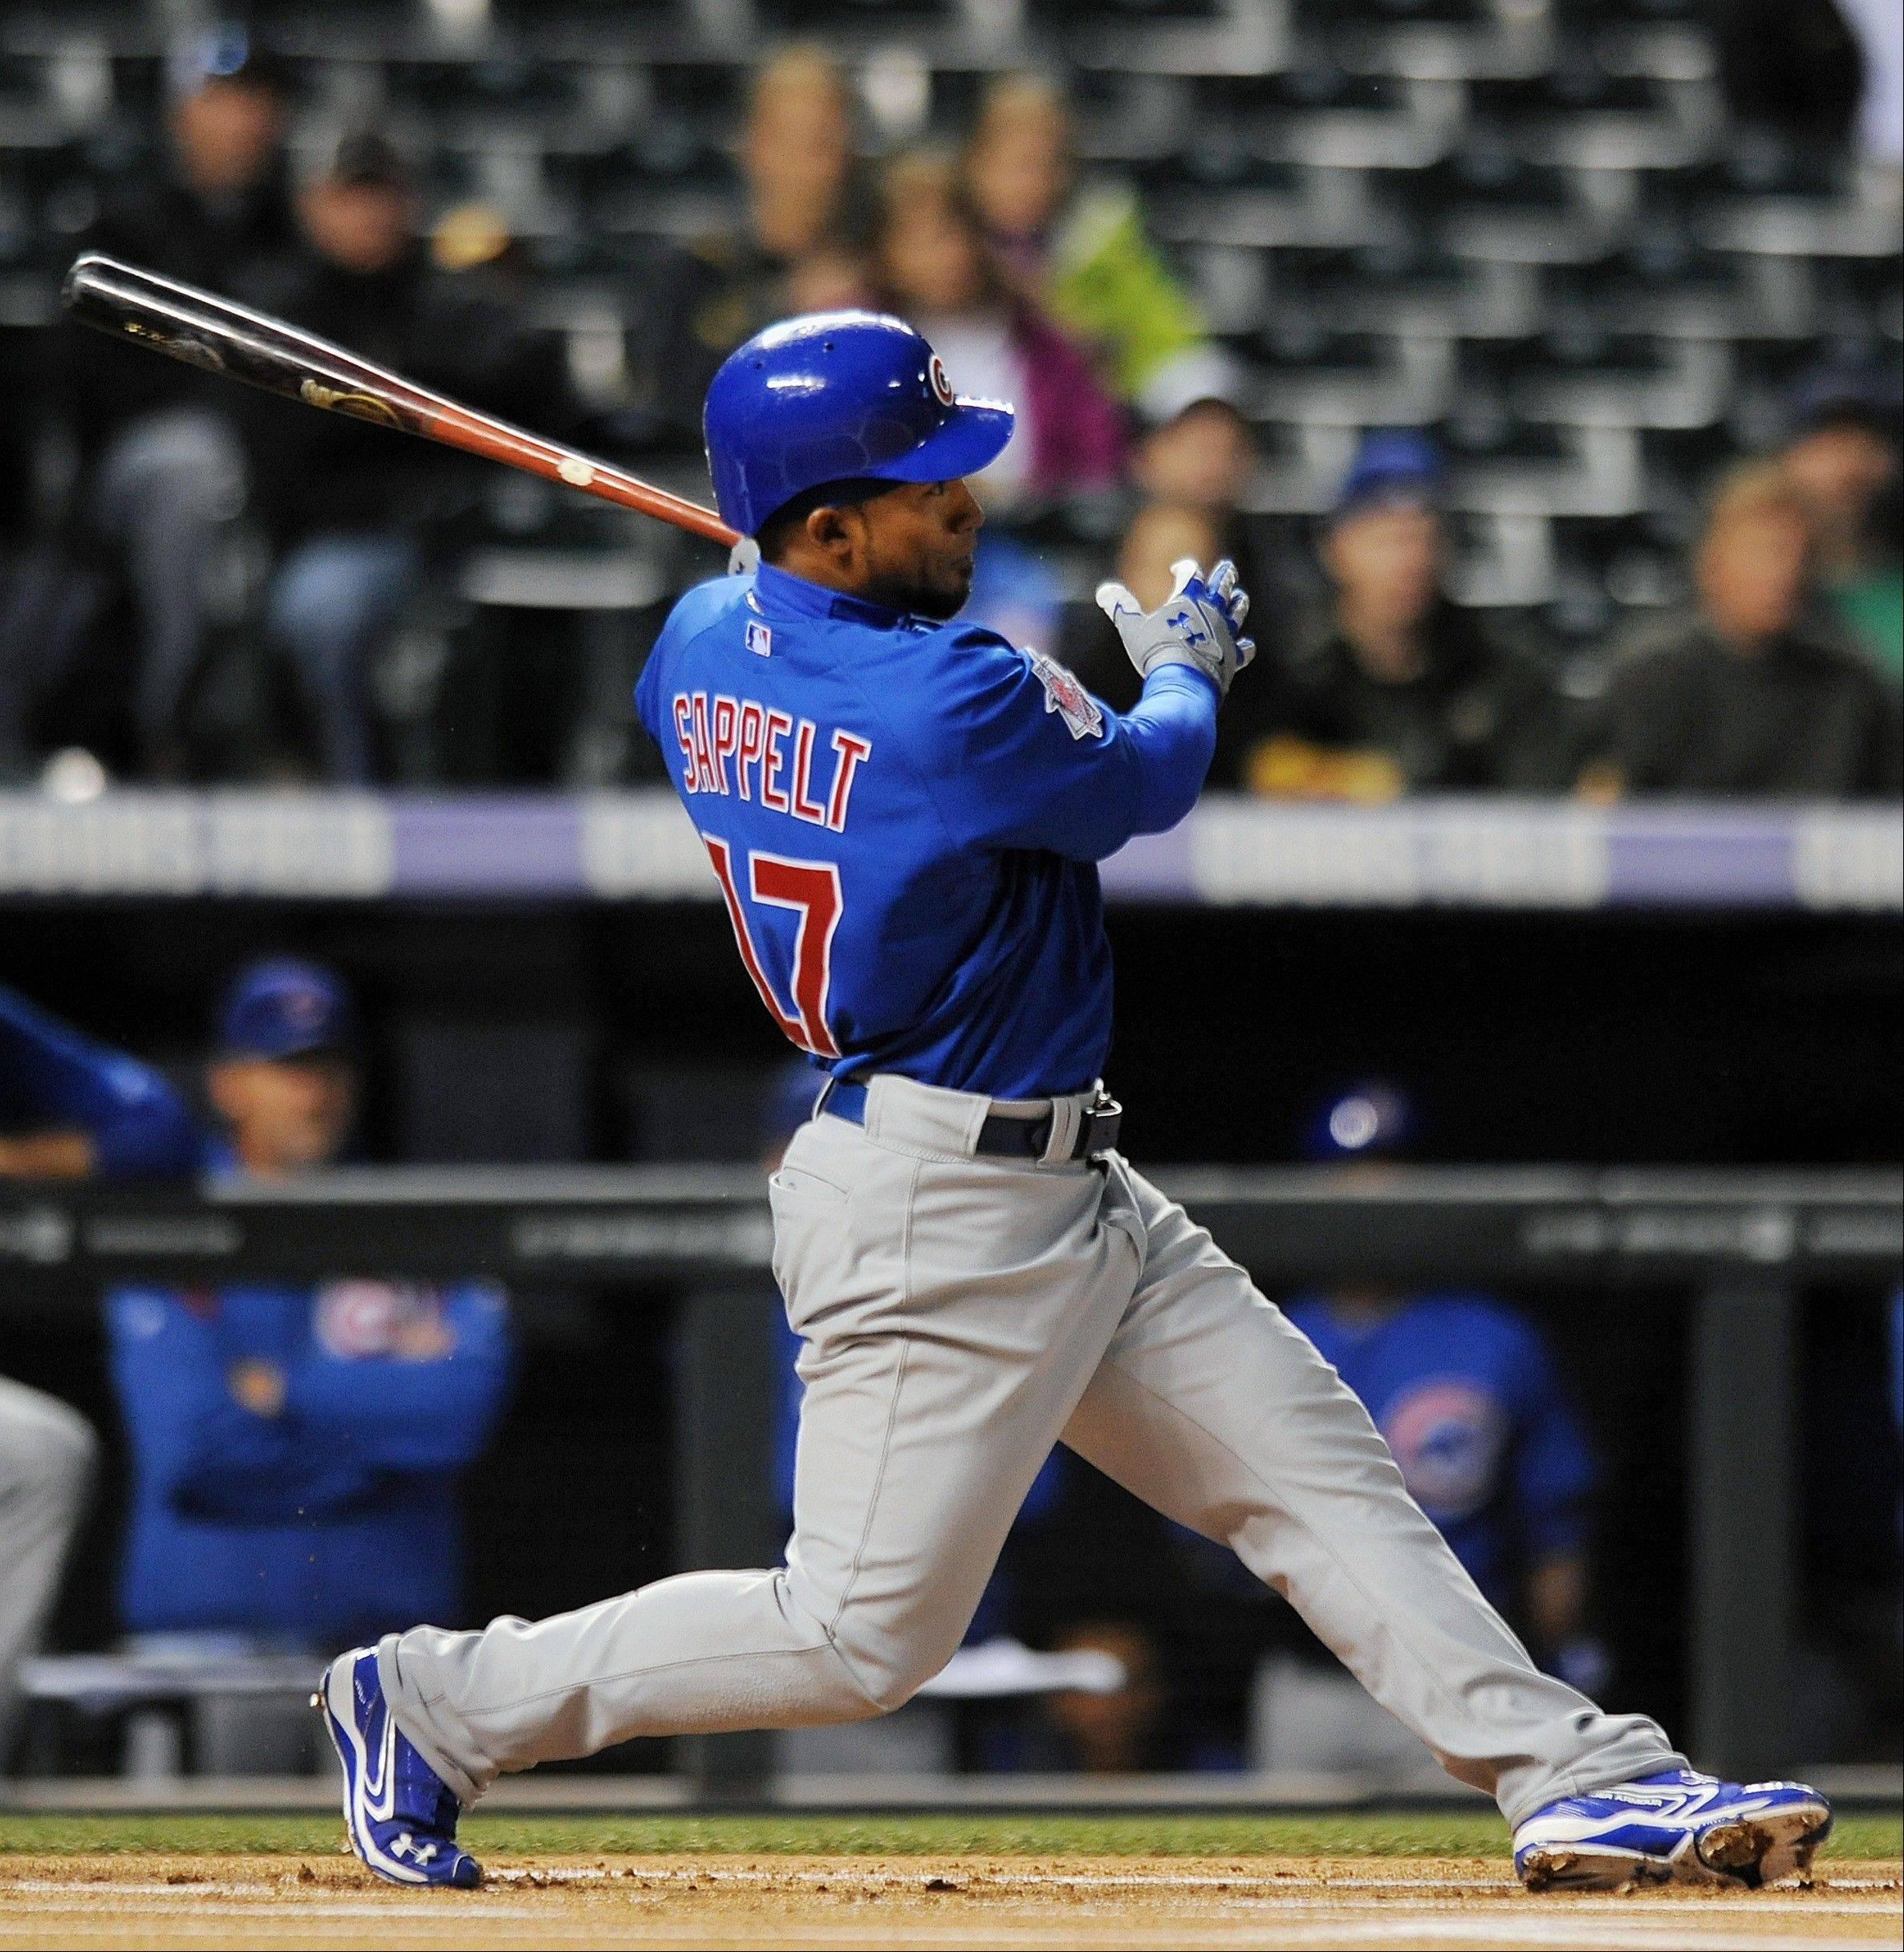 The Cubs' Dave Sappelt hits a home run Tuesday during the first inning against the Colorado Rockies.